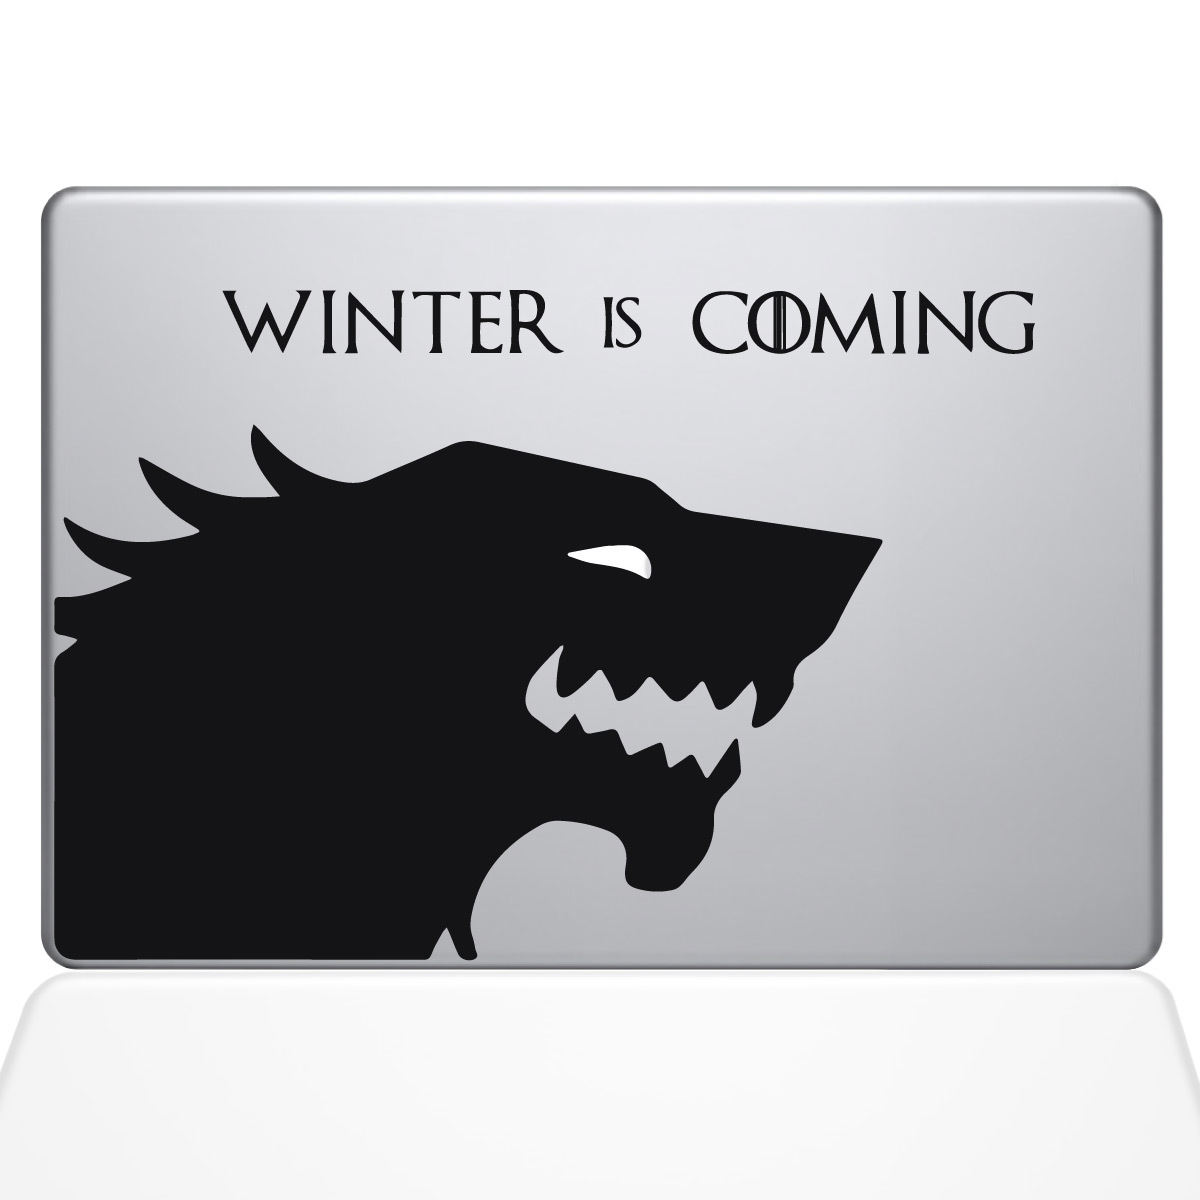 Game of Thrones Mac Decal Sticker